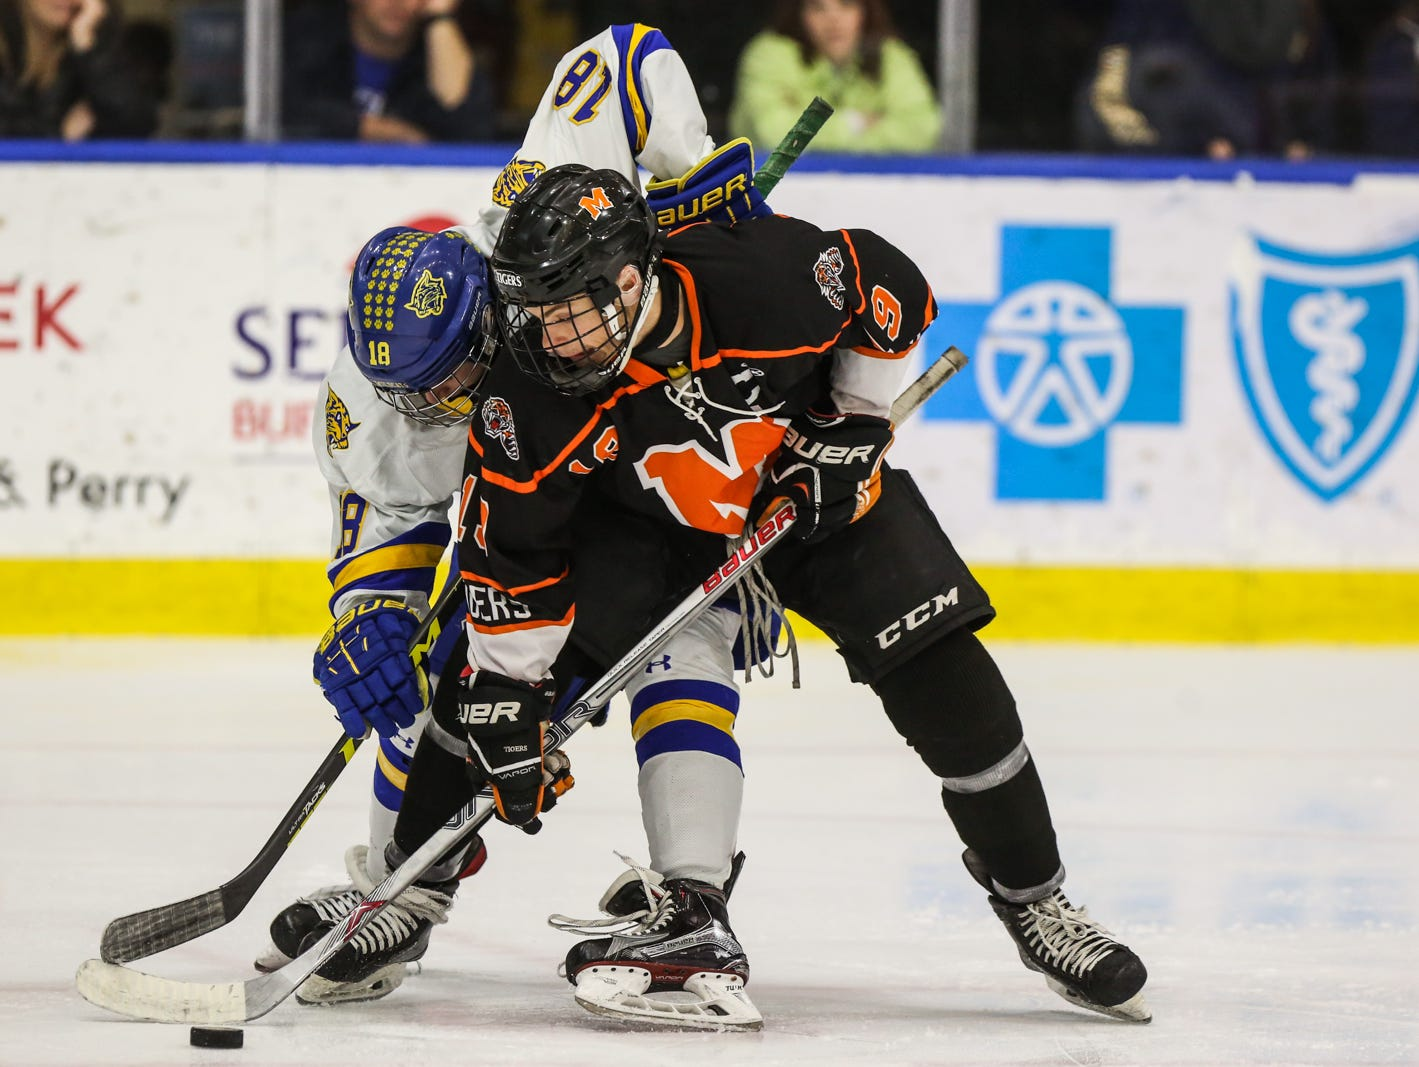 Mamaroneck's Will Kirk (19) and West Genesee's Patrick McDonald (18) ties up at the face-off in the second period. Mamaroneck defeated West Genesee 1-0 and won the NYSPHSAA Division 1 HarborCenter in Buffalo, NY. Nick Serrata - For The Journal News